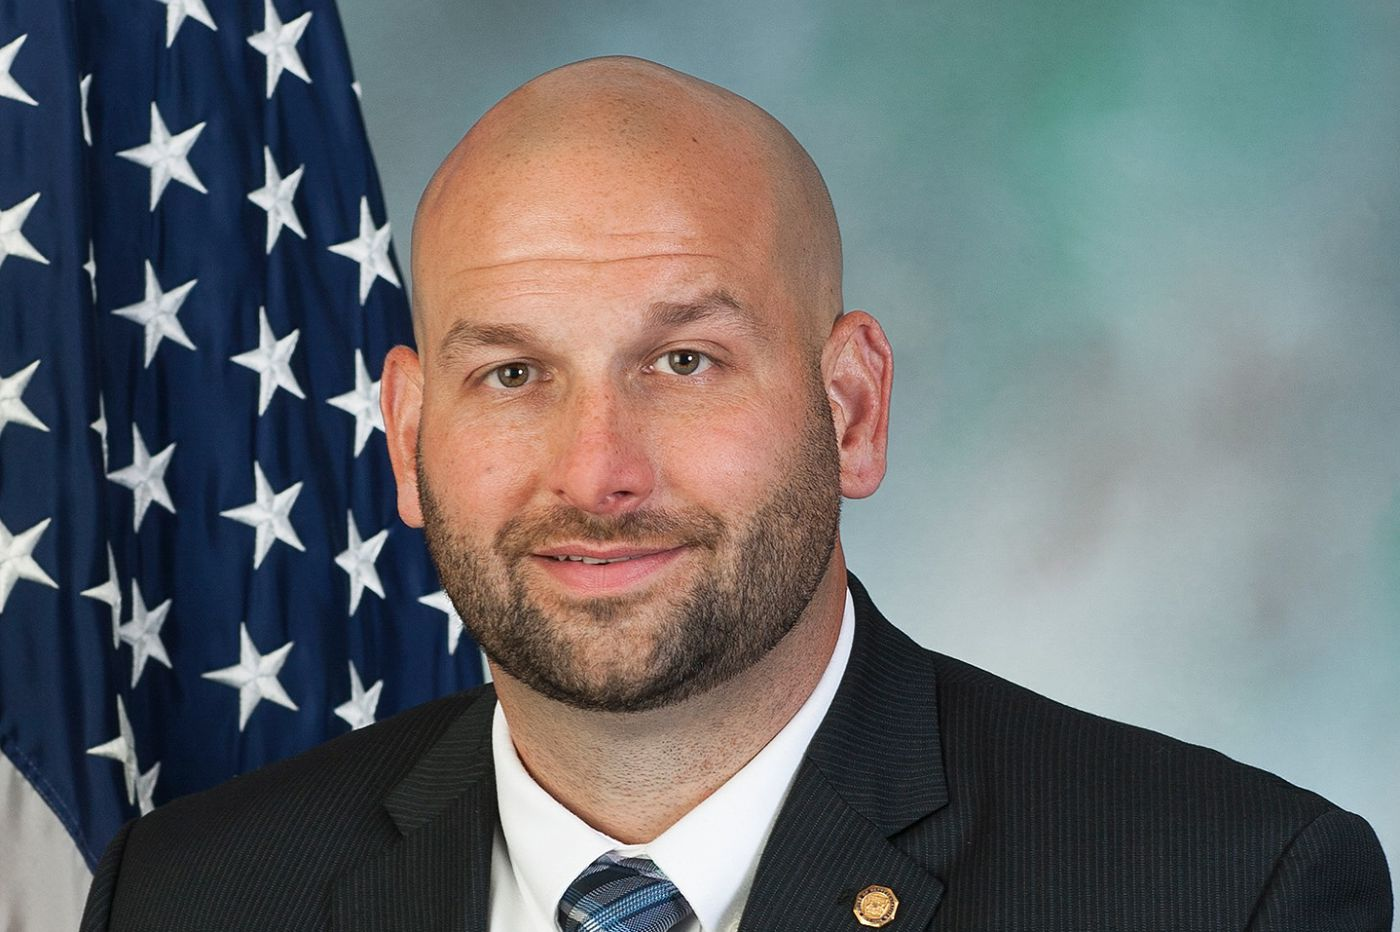 Official: Republican Pa. Rep. Mike Reese dies following apparent brain aneurysm, after testing positive for COVID-19